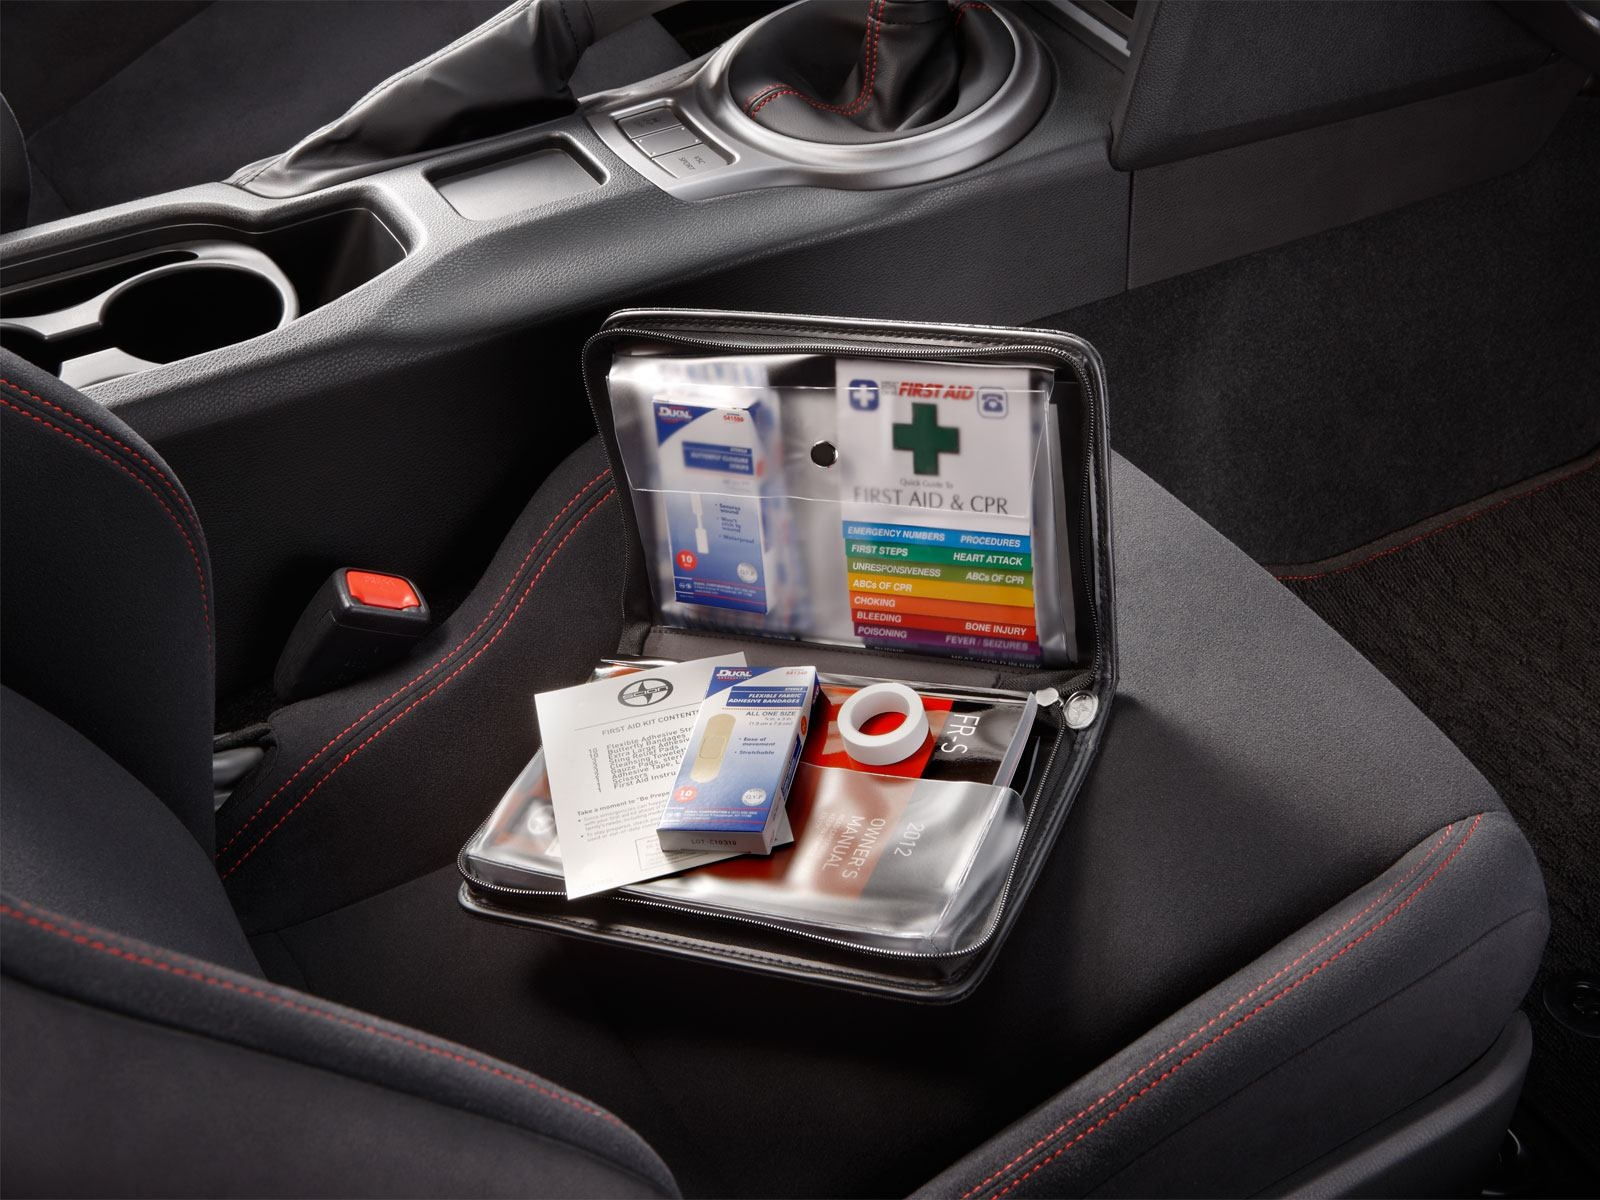 First-Aid-Kit-for-Car.jpg